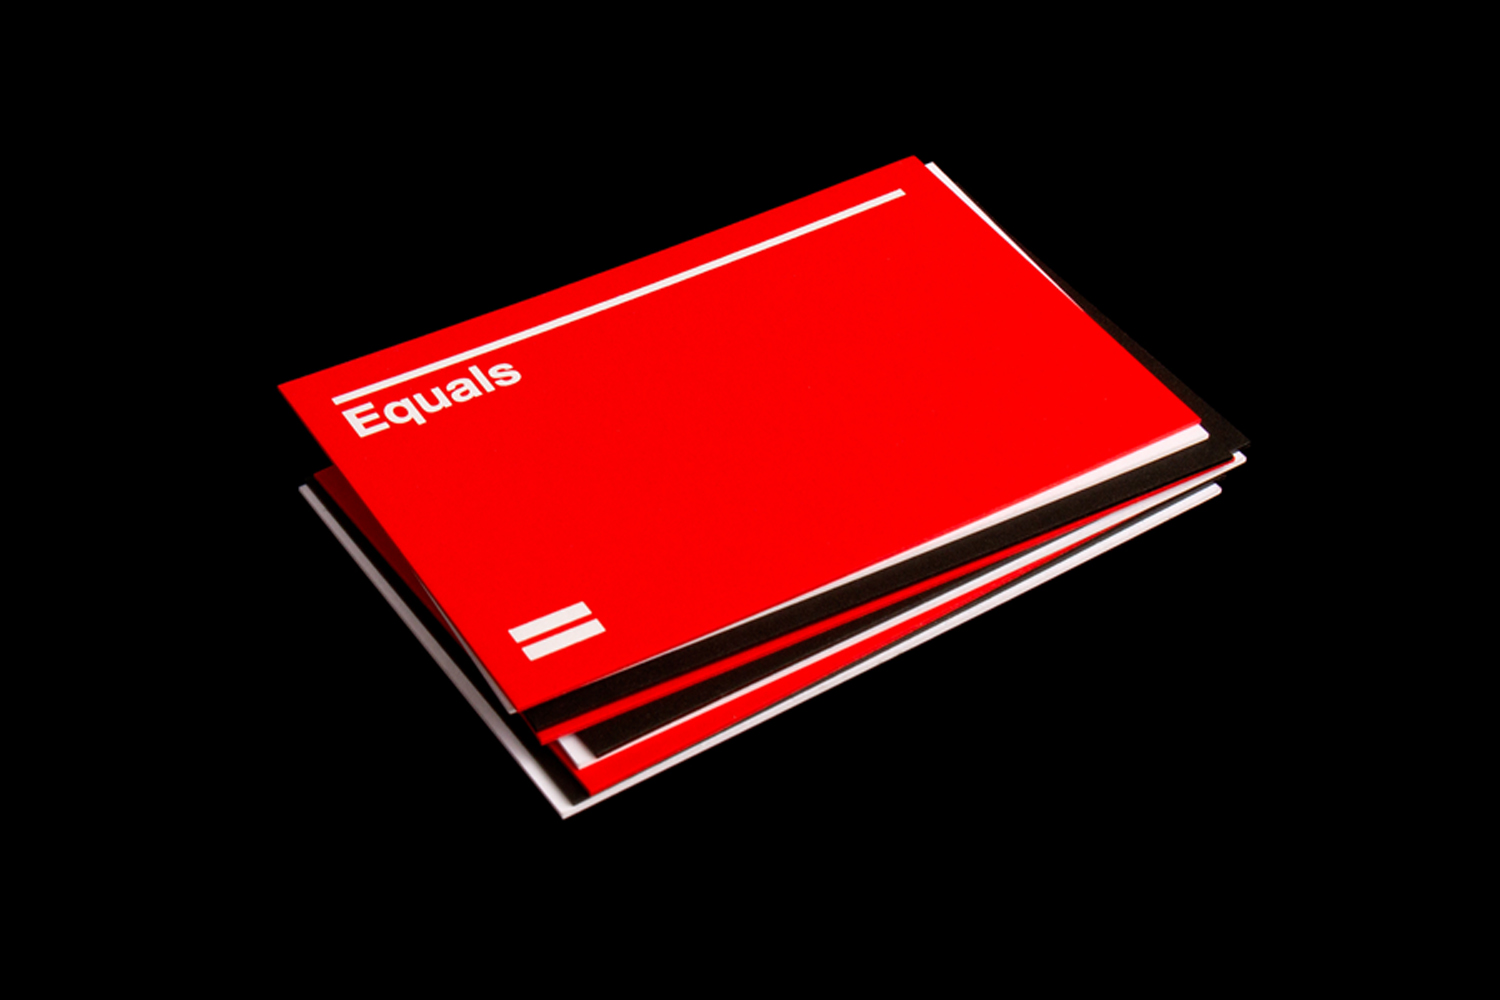 Red, black and white business cards for Equals Consulting designed by Spin